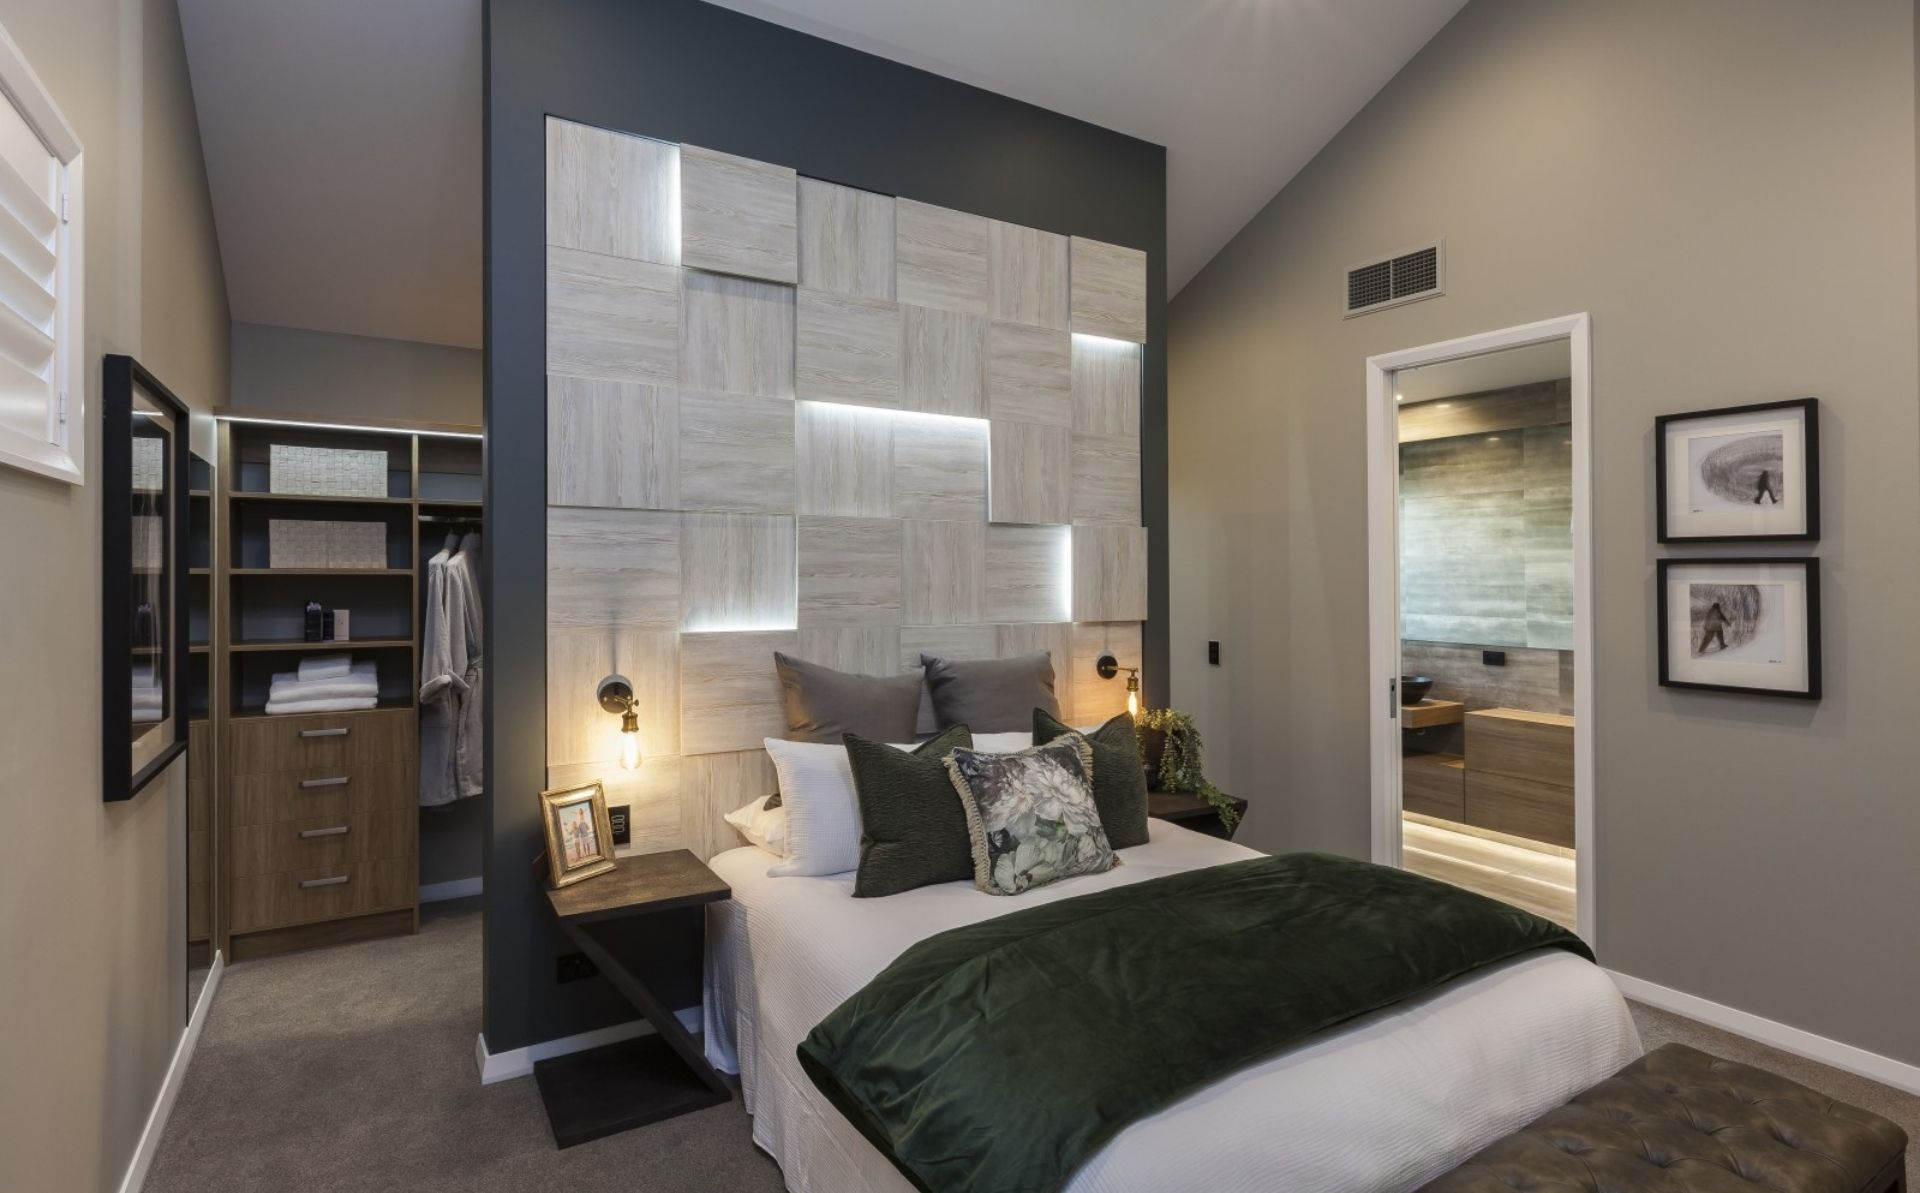 Hallmark Homes Lincoln bedroom - Architectural Features for Your New Home